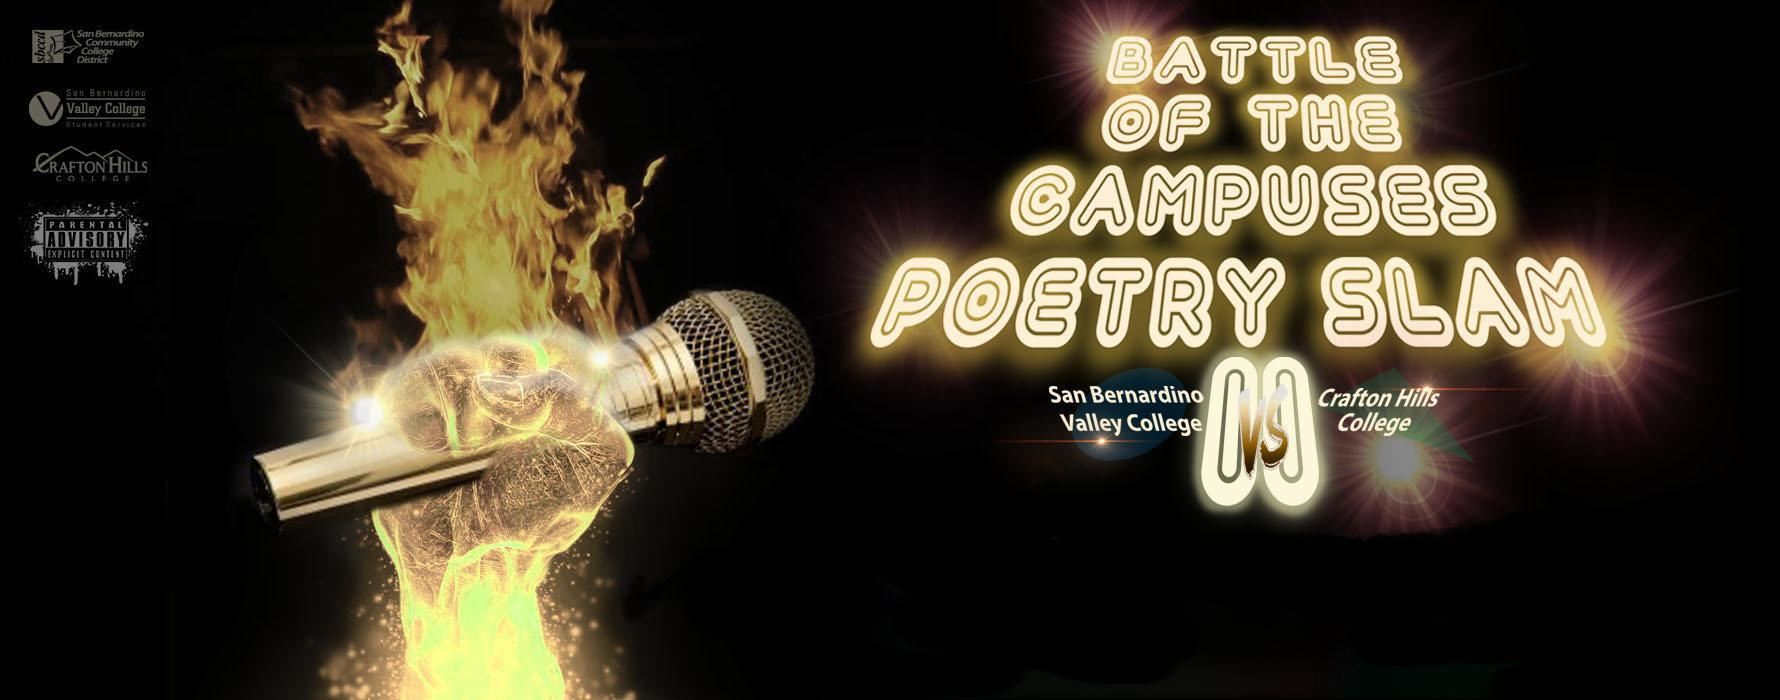 Battle of the Campuses Poetry Slam